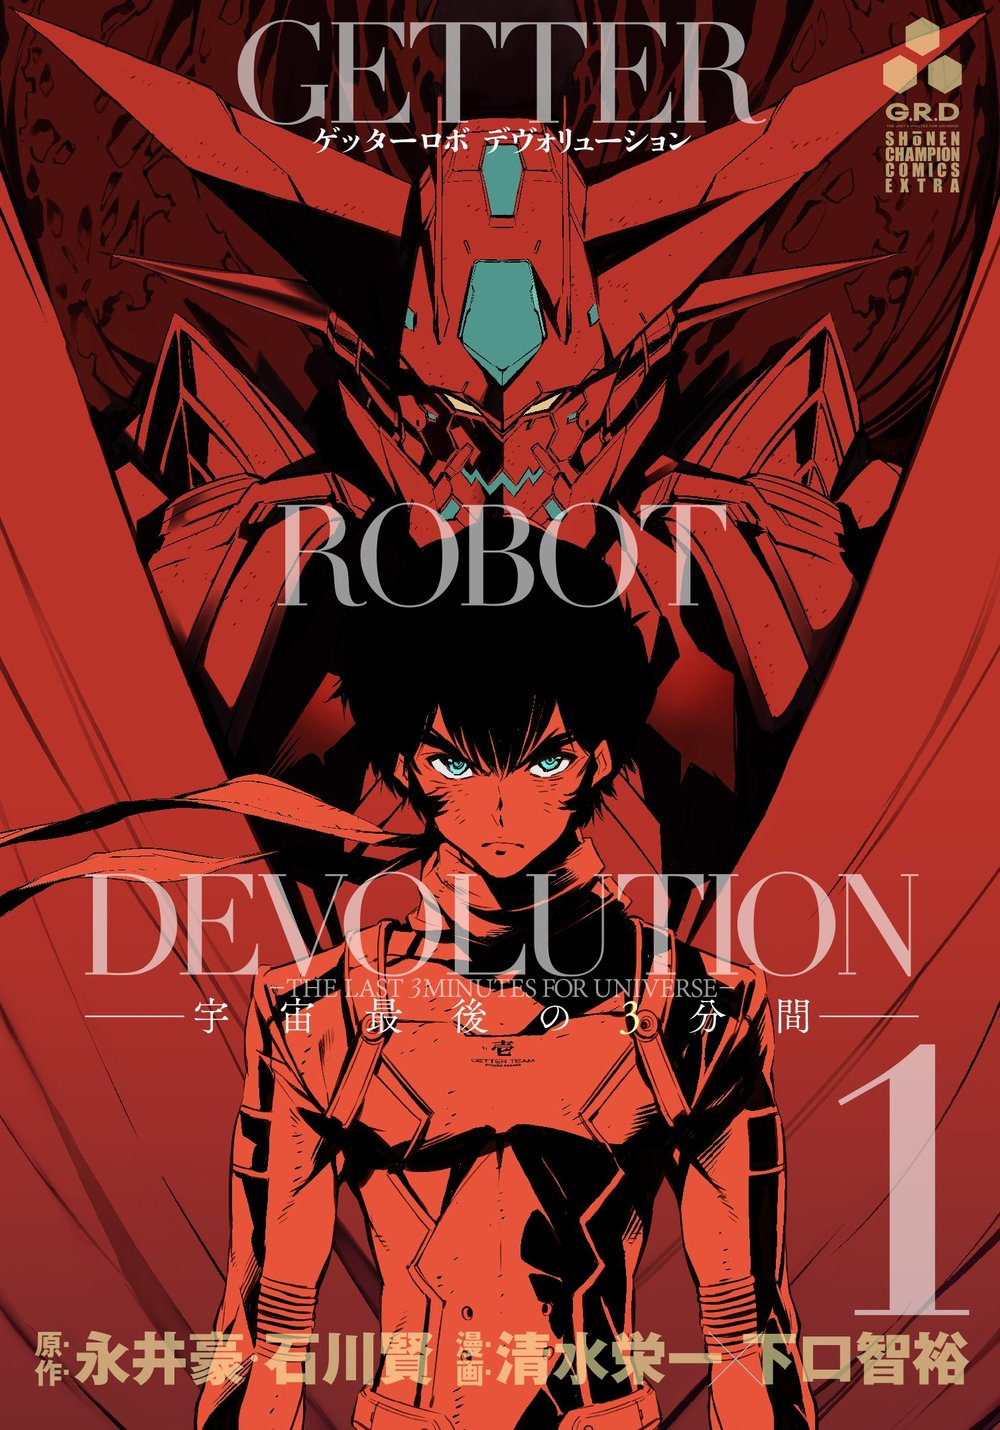 Getter Robo Devolution by Eiichi Shimizu and Tomohiro Shimoguchi  A modern take on the sci-fi classic from the creative team behind the Ultraman manga series.